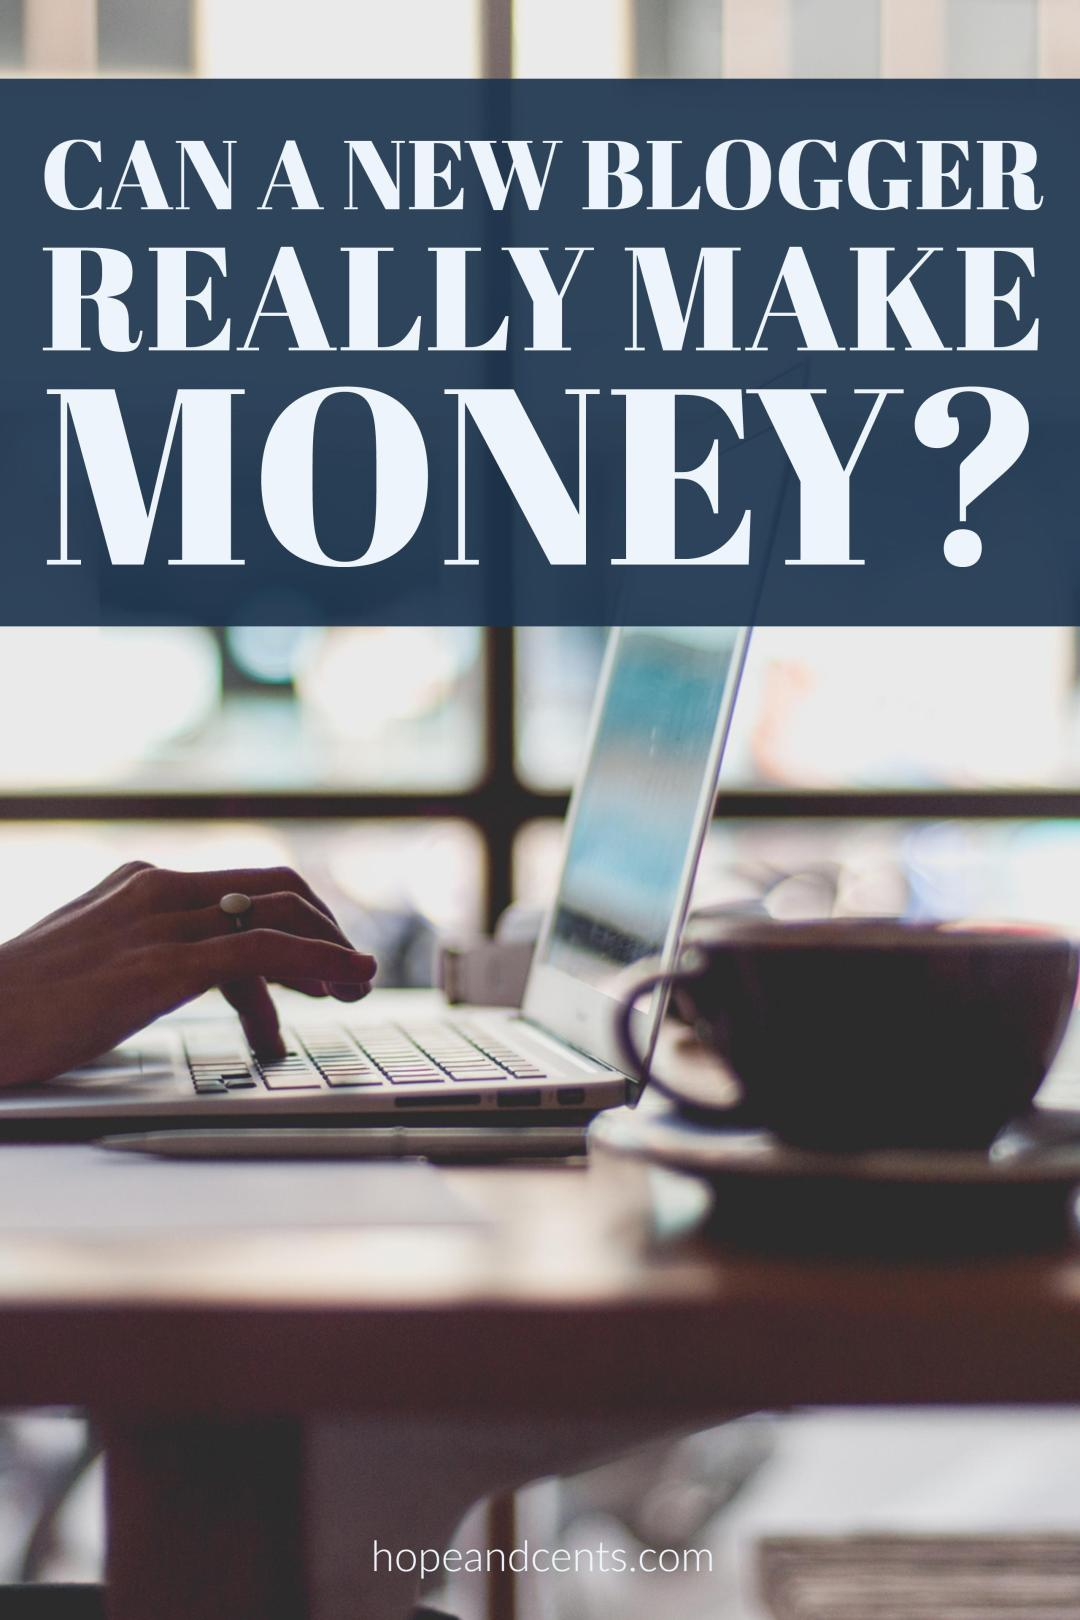 Can a new blogger really make money? This blogger makes over $70,000 month and $50,000 is from affiliate marketing. She shares her tips on how new bloggers can make money. #bogging #workfromhome #blogger #sidehustle